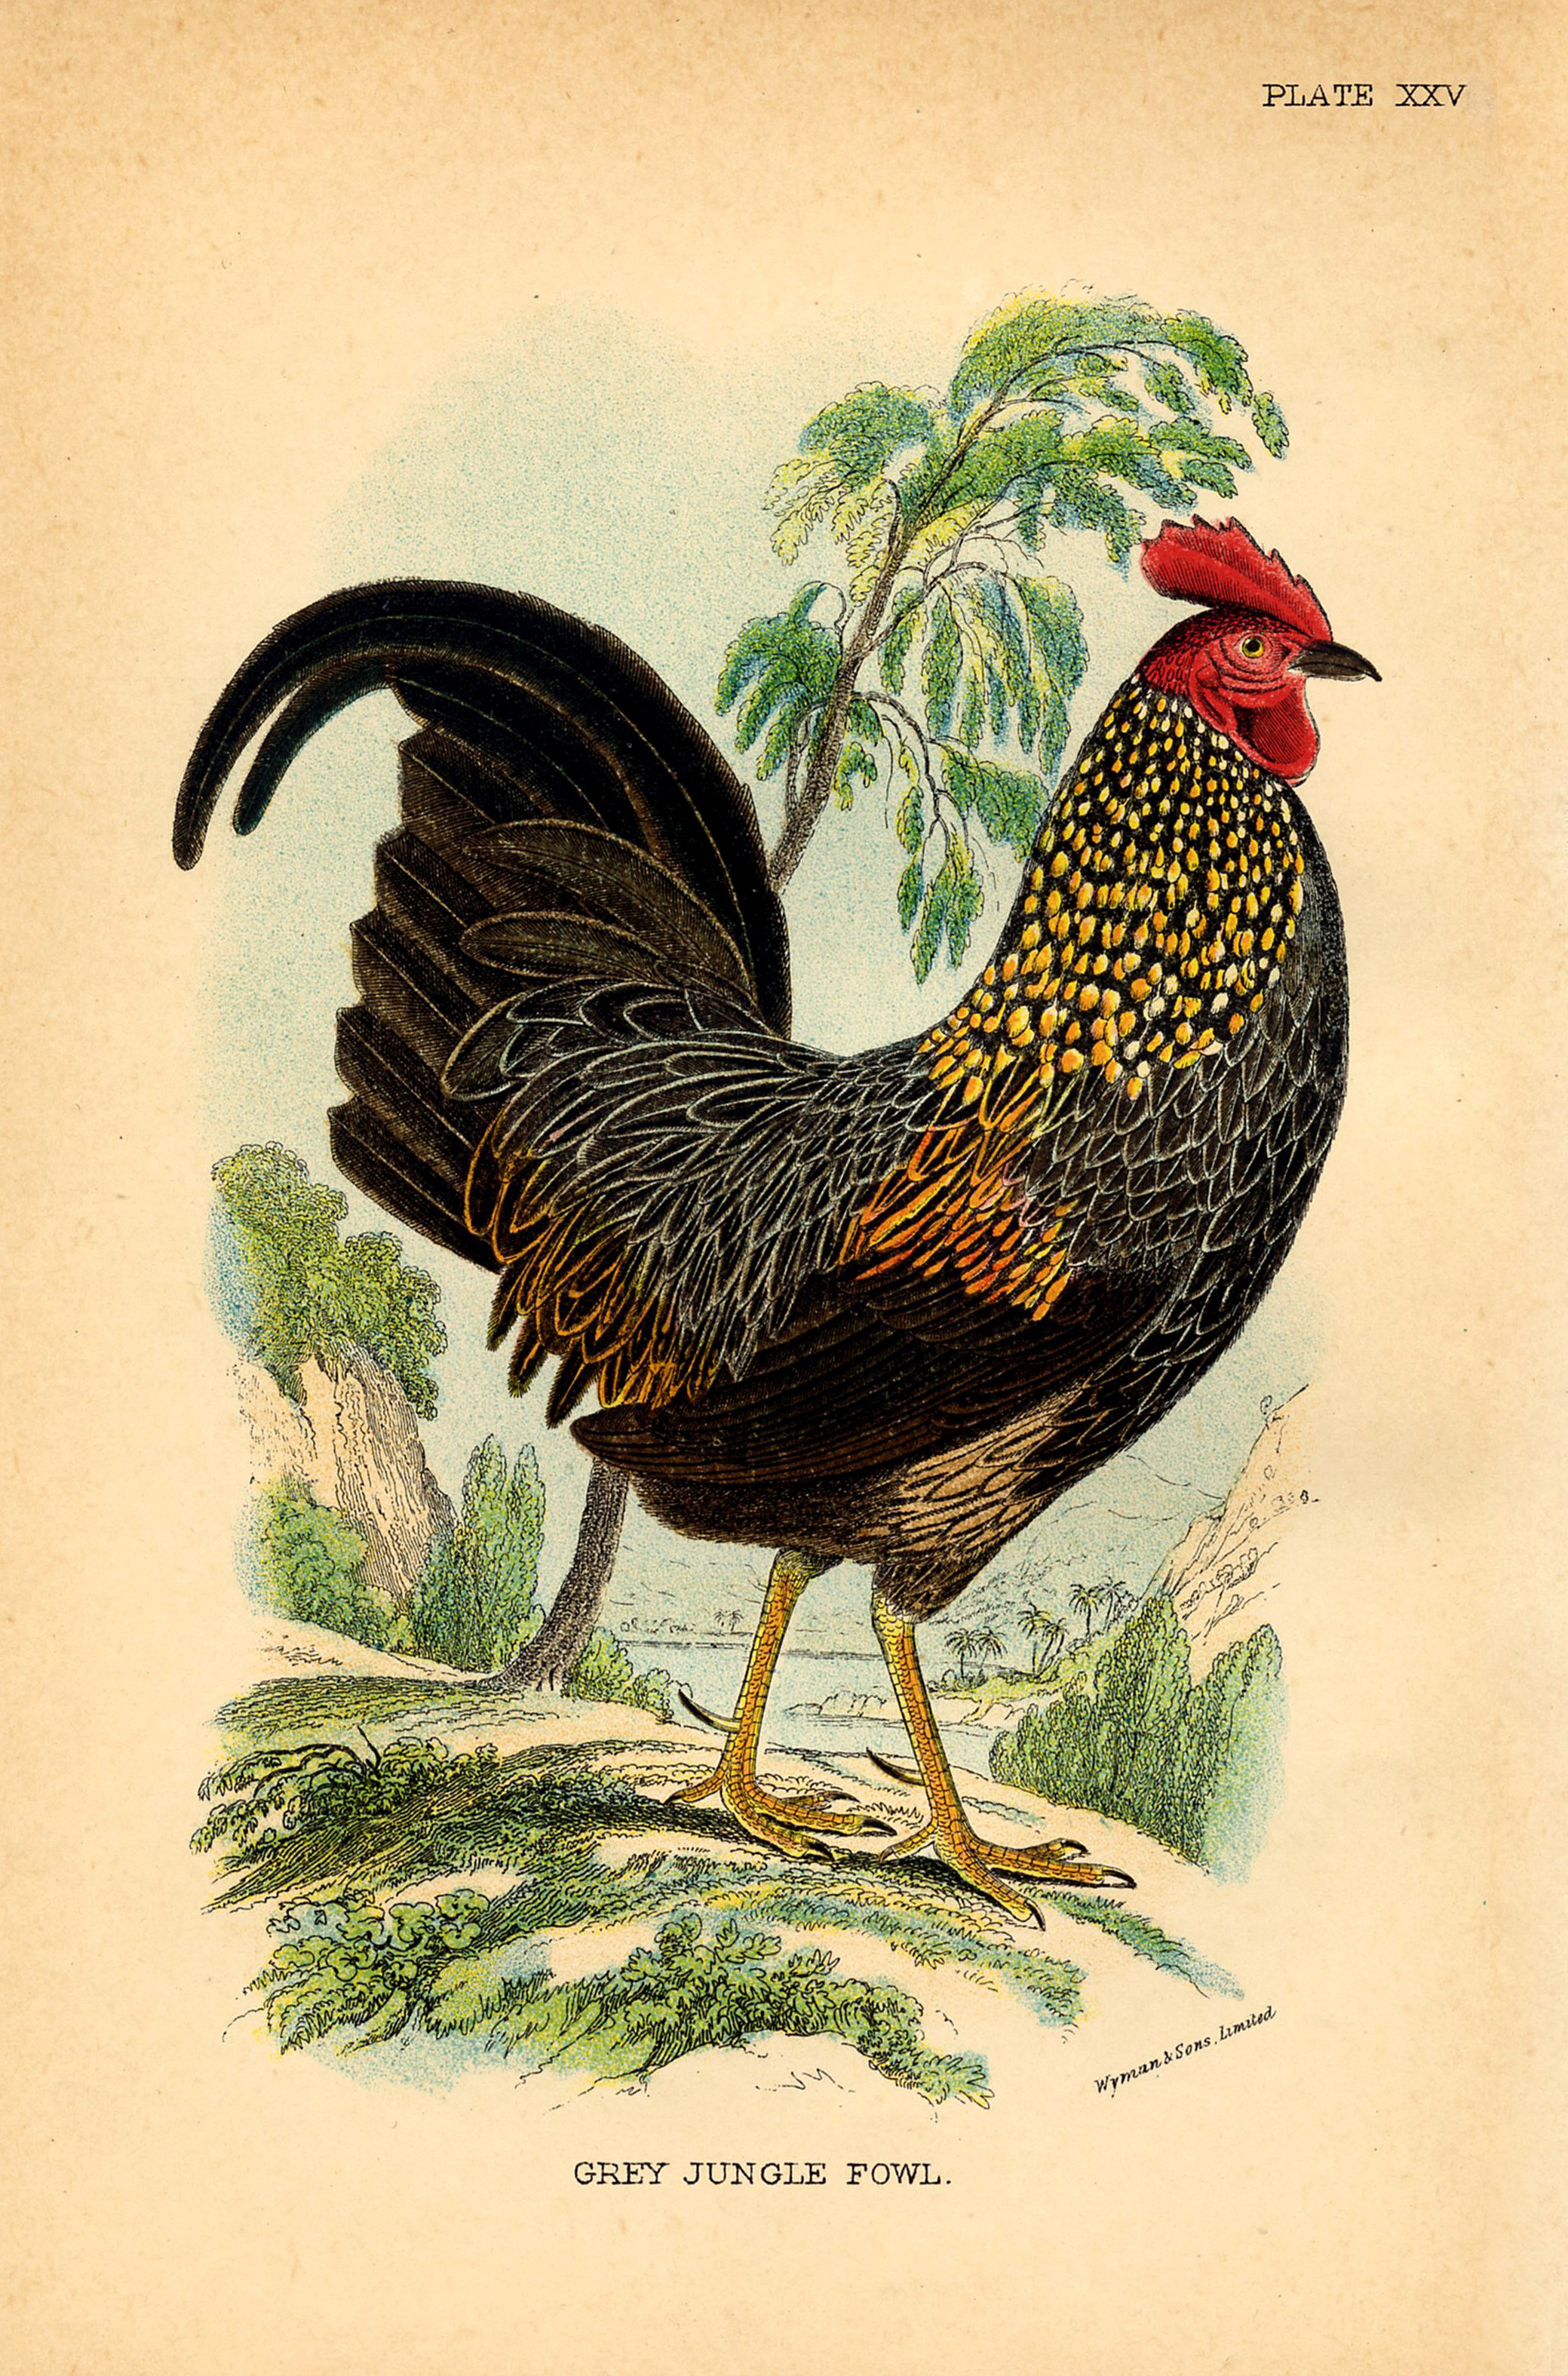 image regarding Free Printable Pictures of Roosters identified as 14 Chicken Illustrations or photos! - The Graphics Fairy